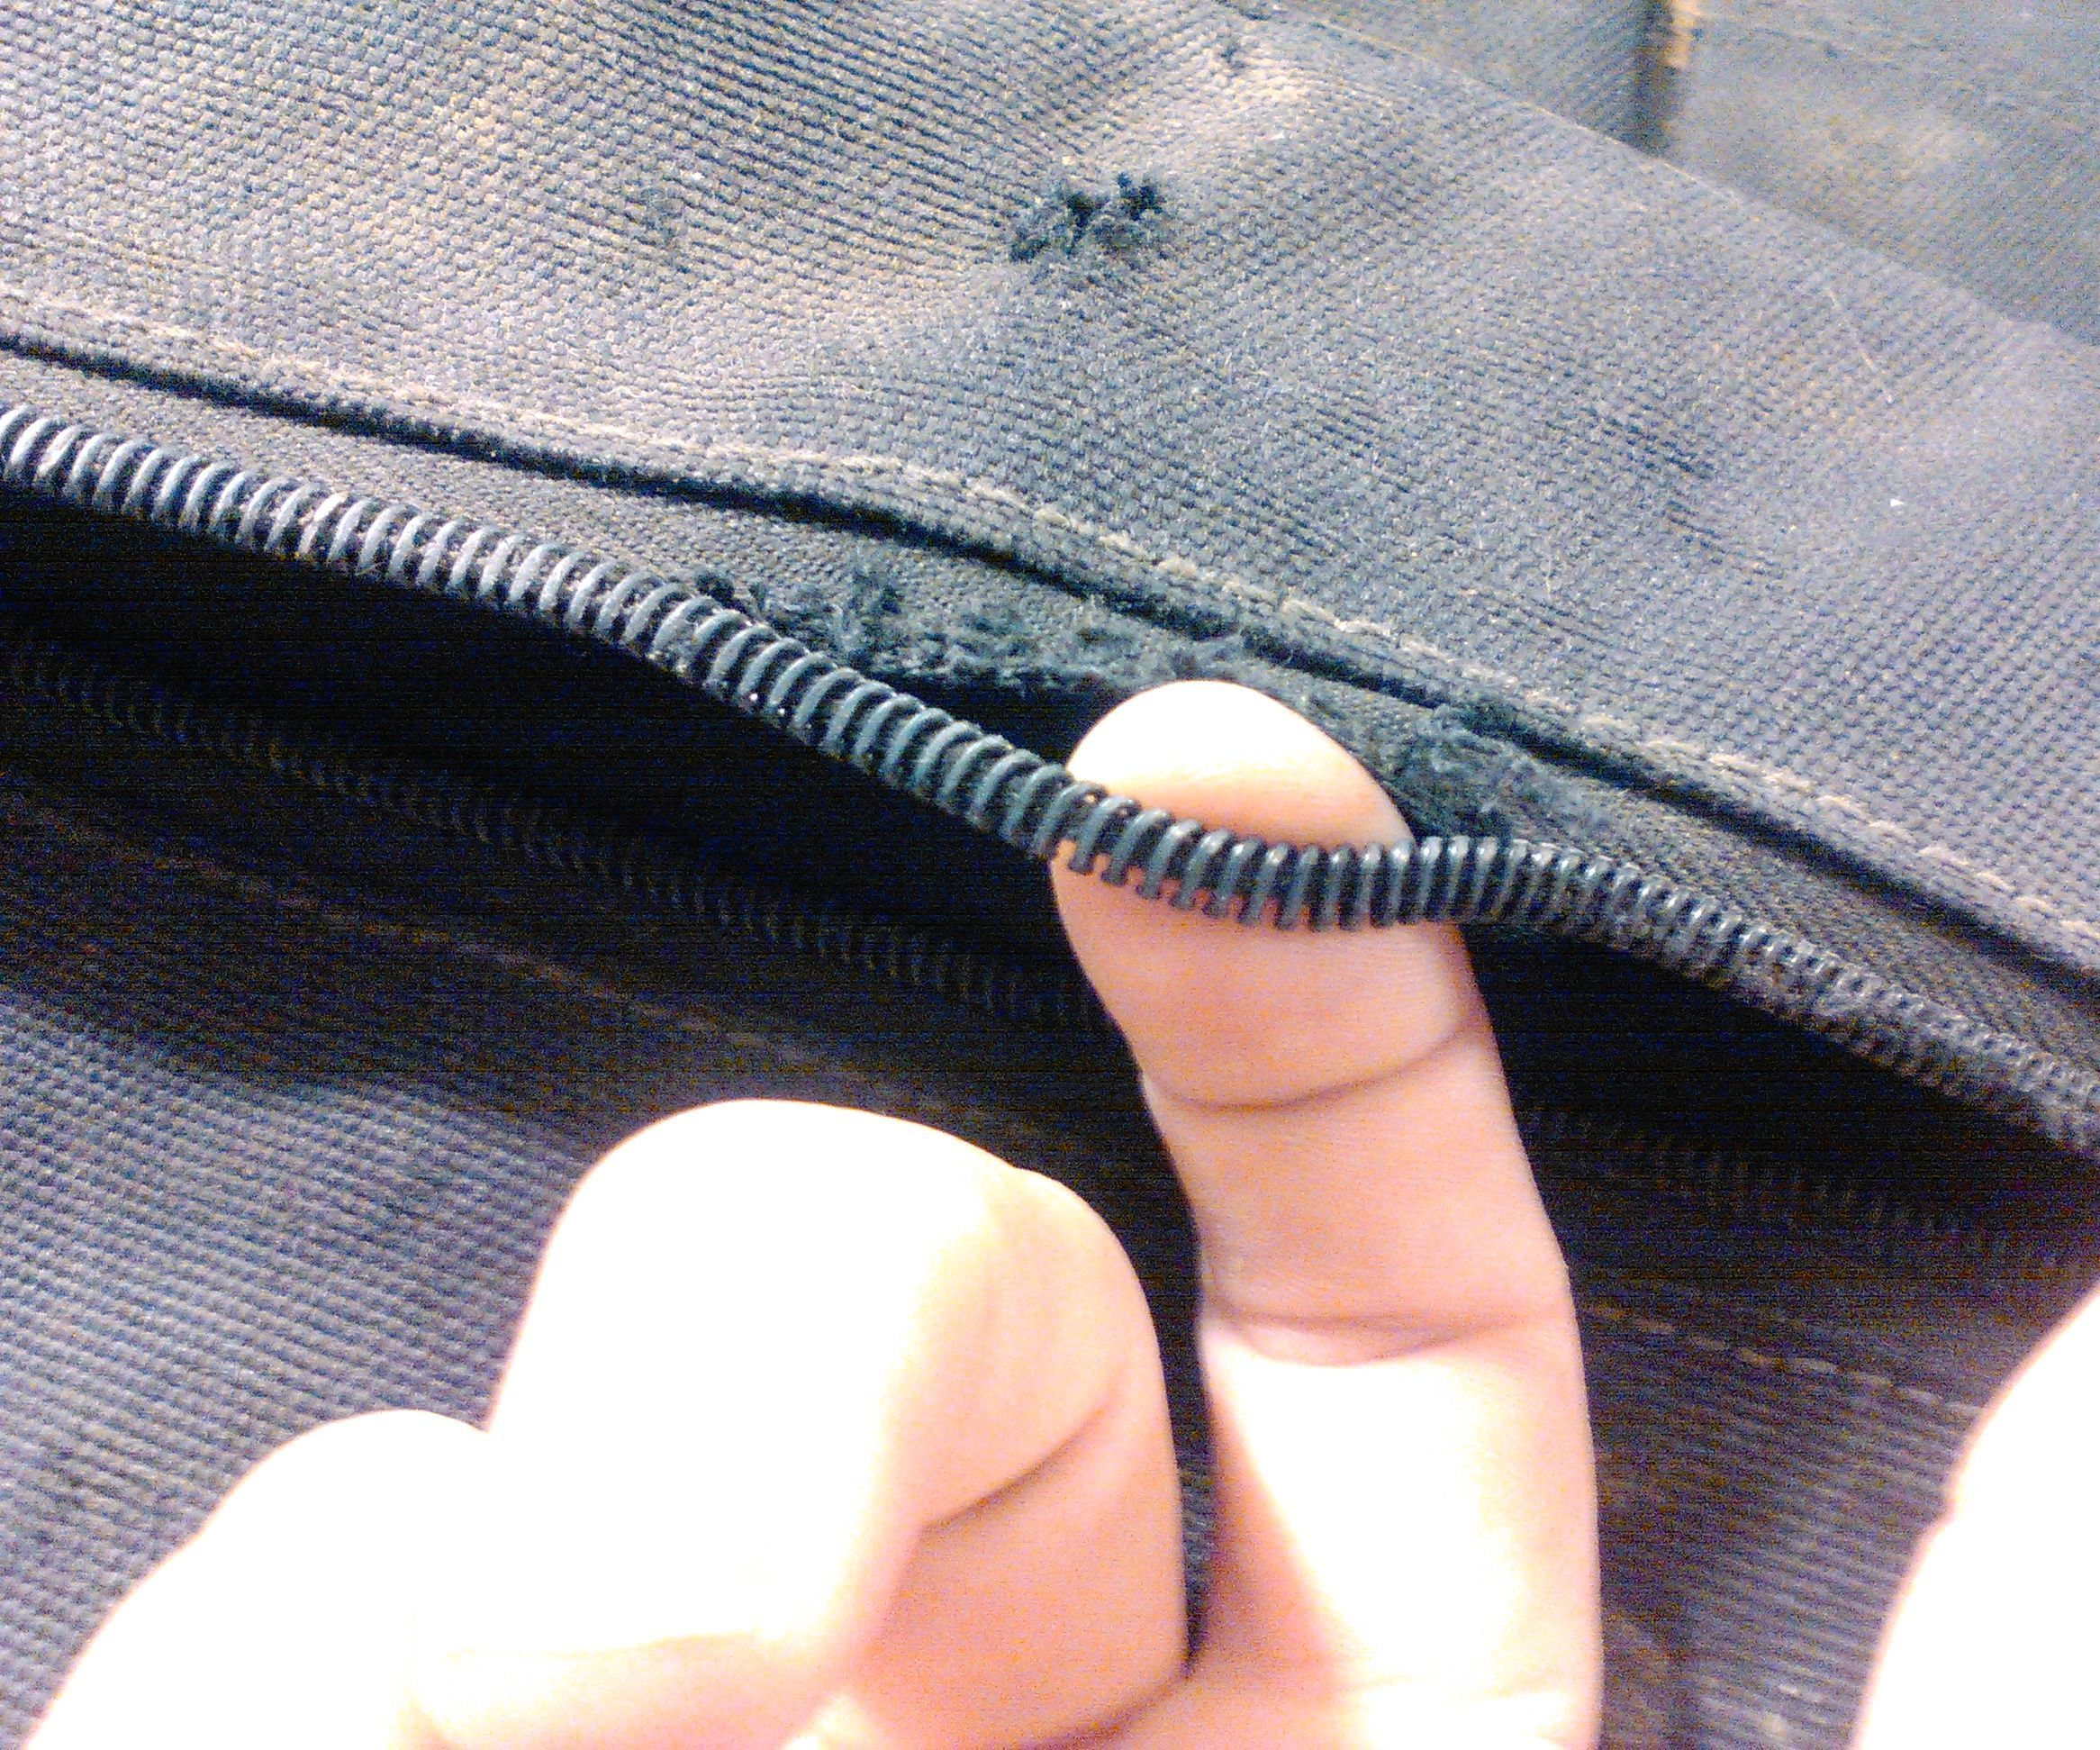 How to fix separated nylon zipper teeth